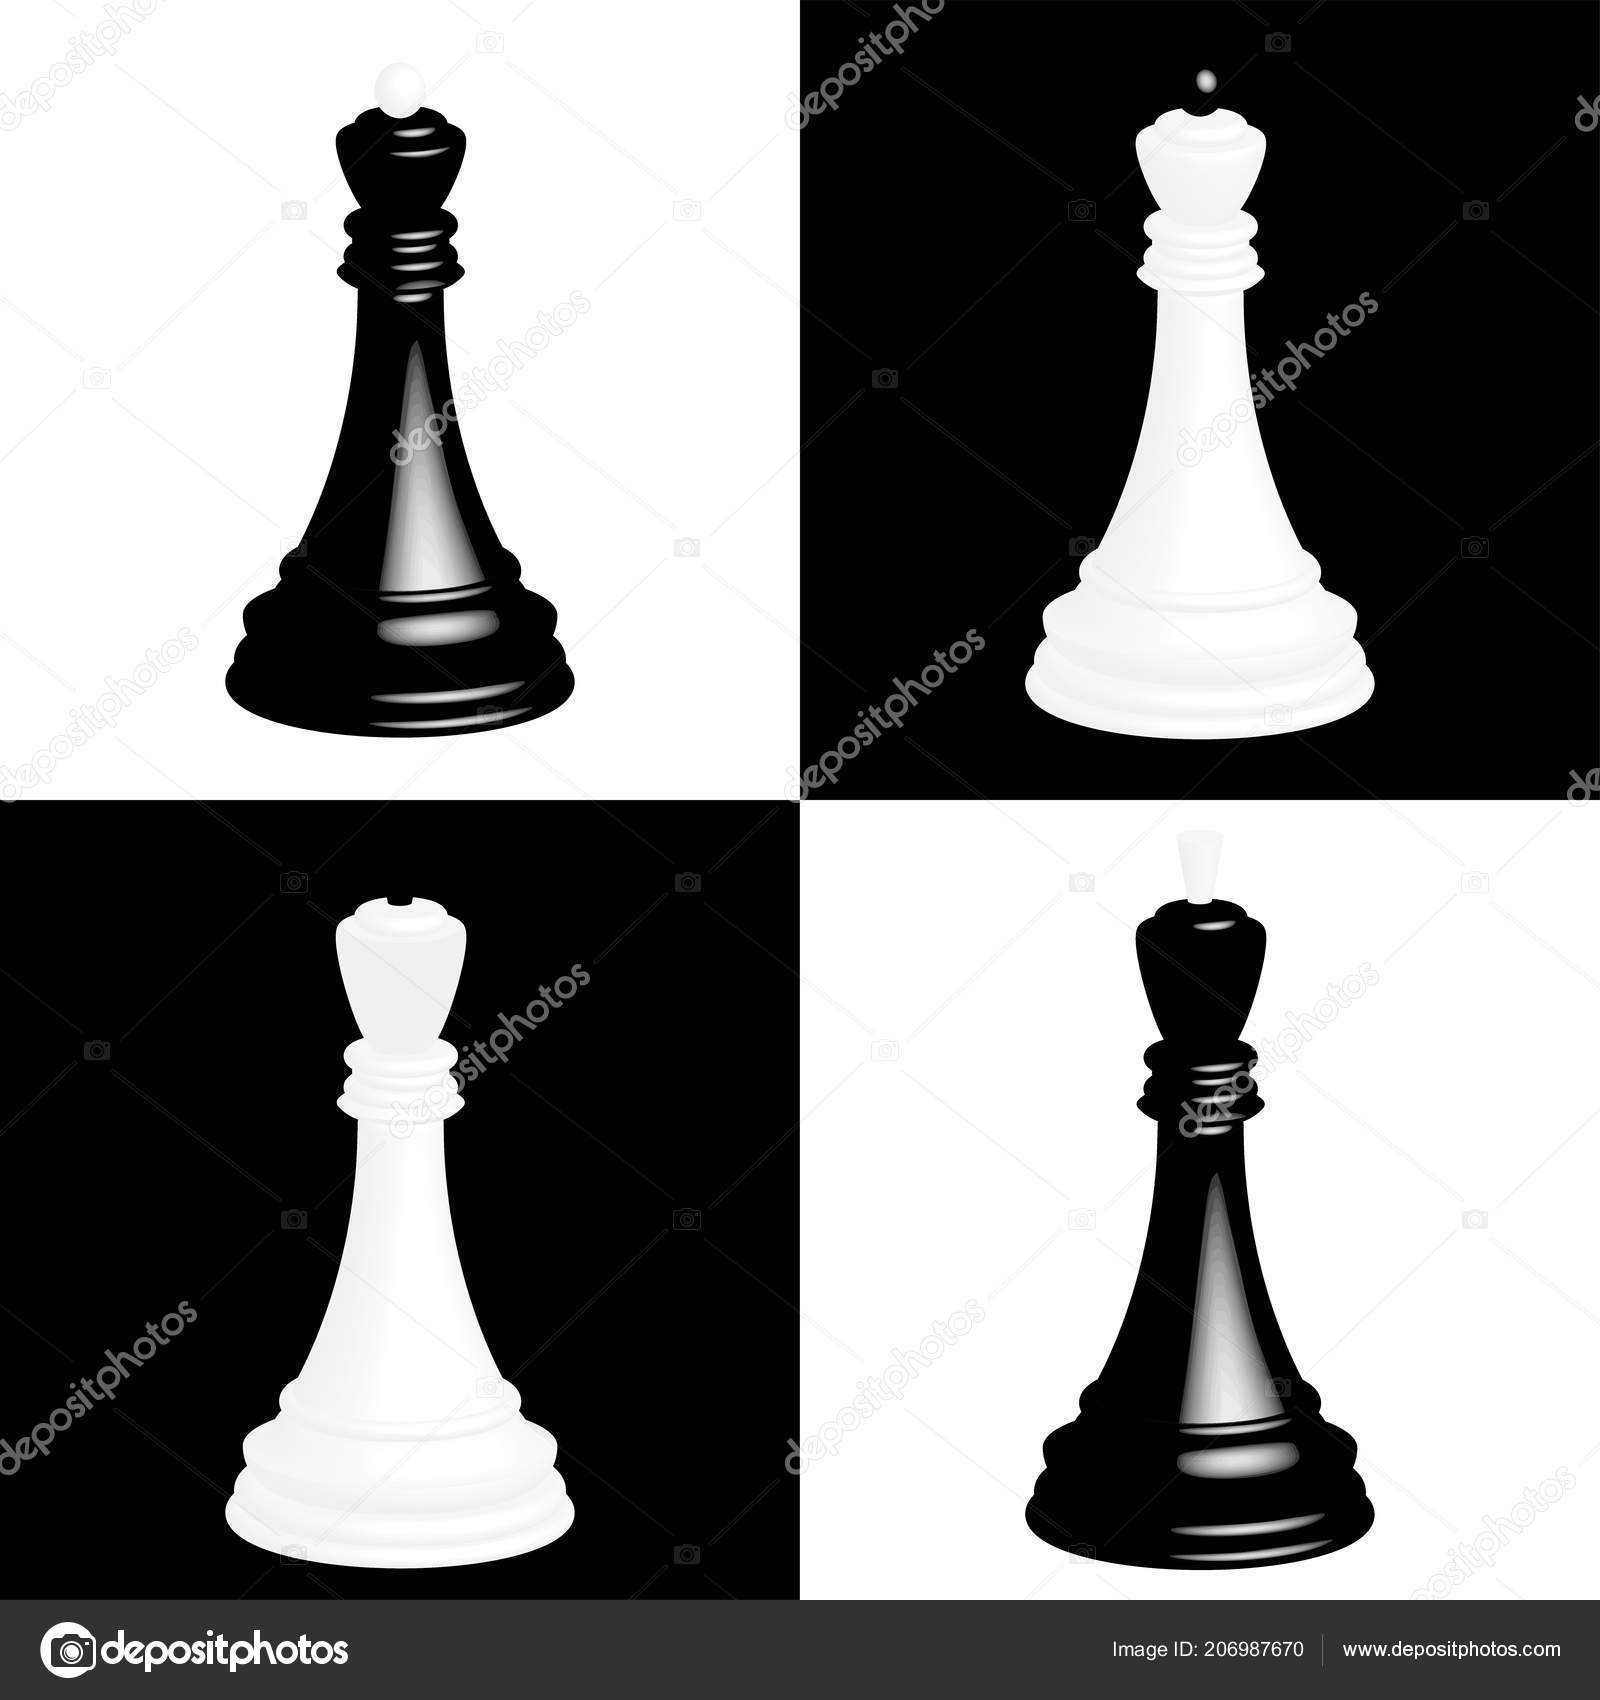 Realistic chess pieces on black and white chessboard cells the black king and the black queen white king and white queen